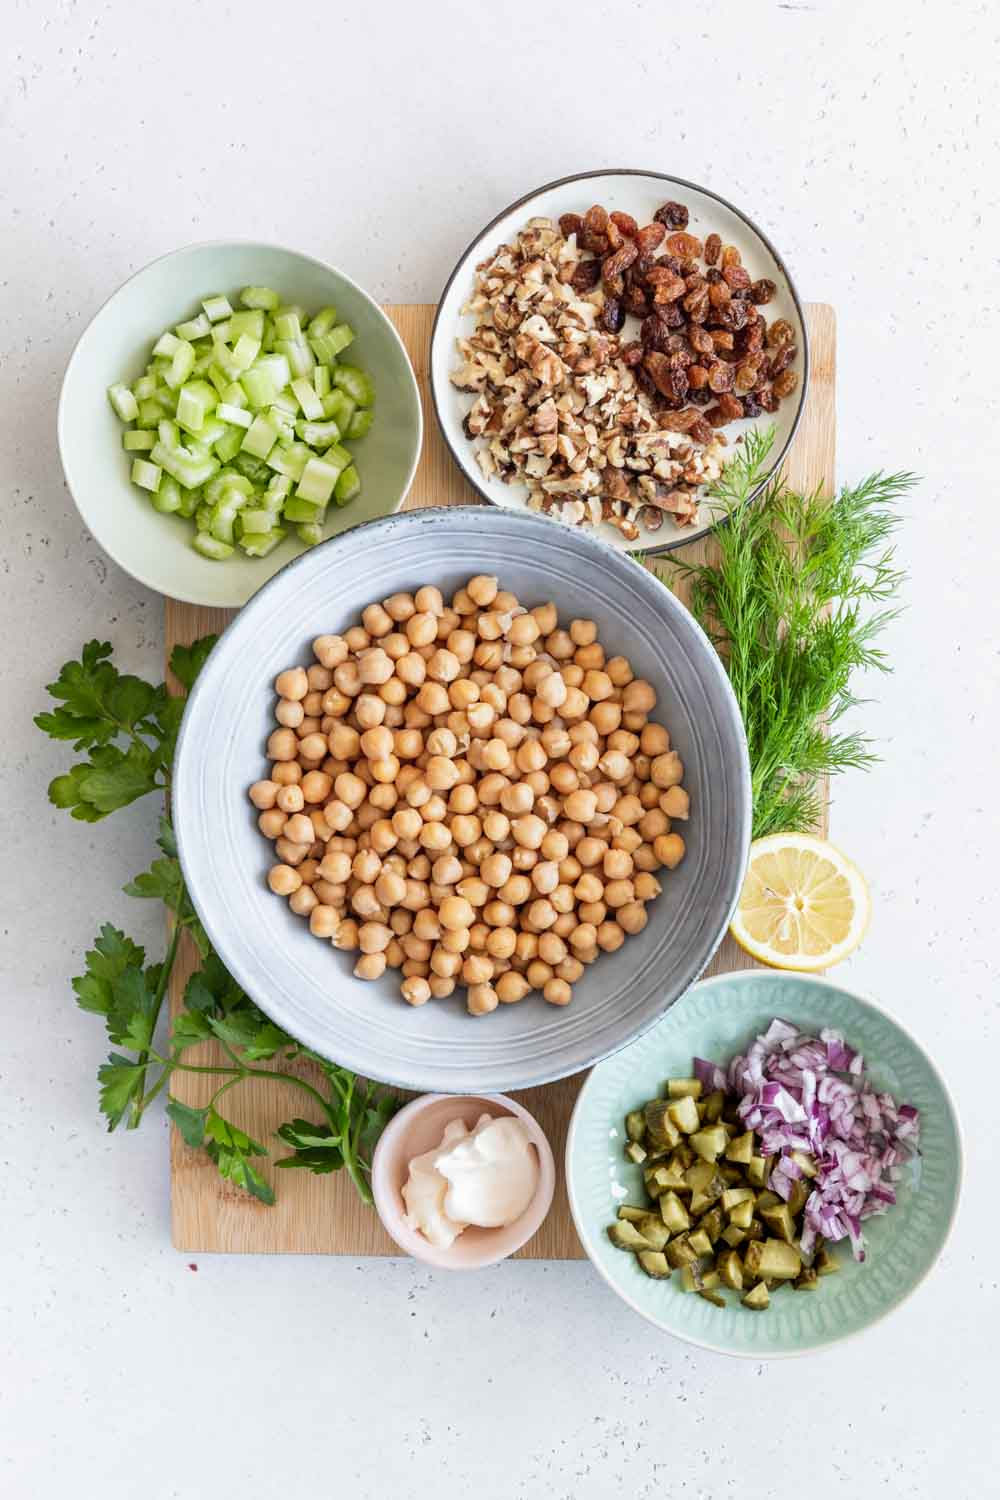 Ingredients for Chickpea Salad Sandwich on a wooden cutting board in bowls